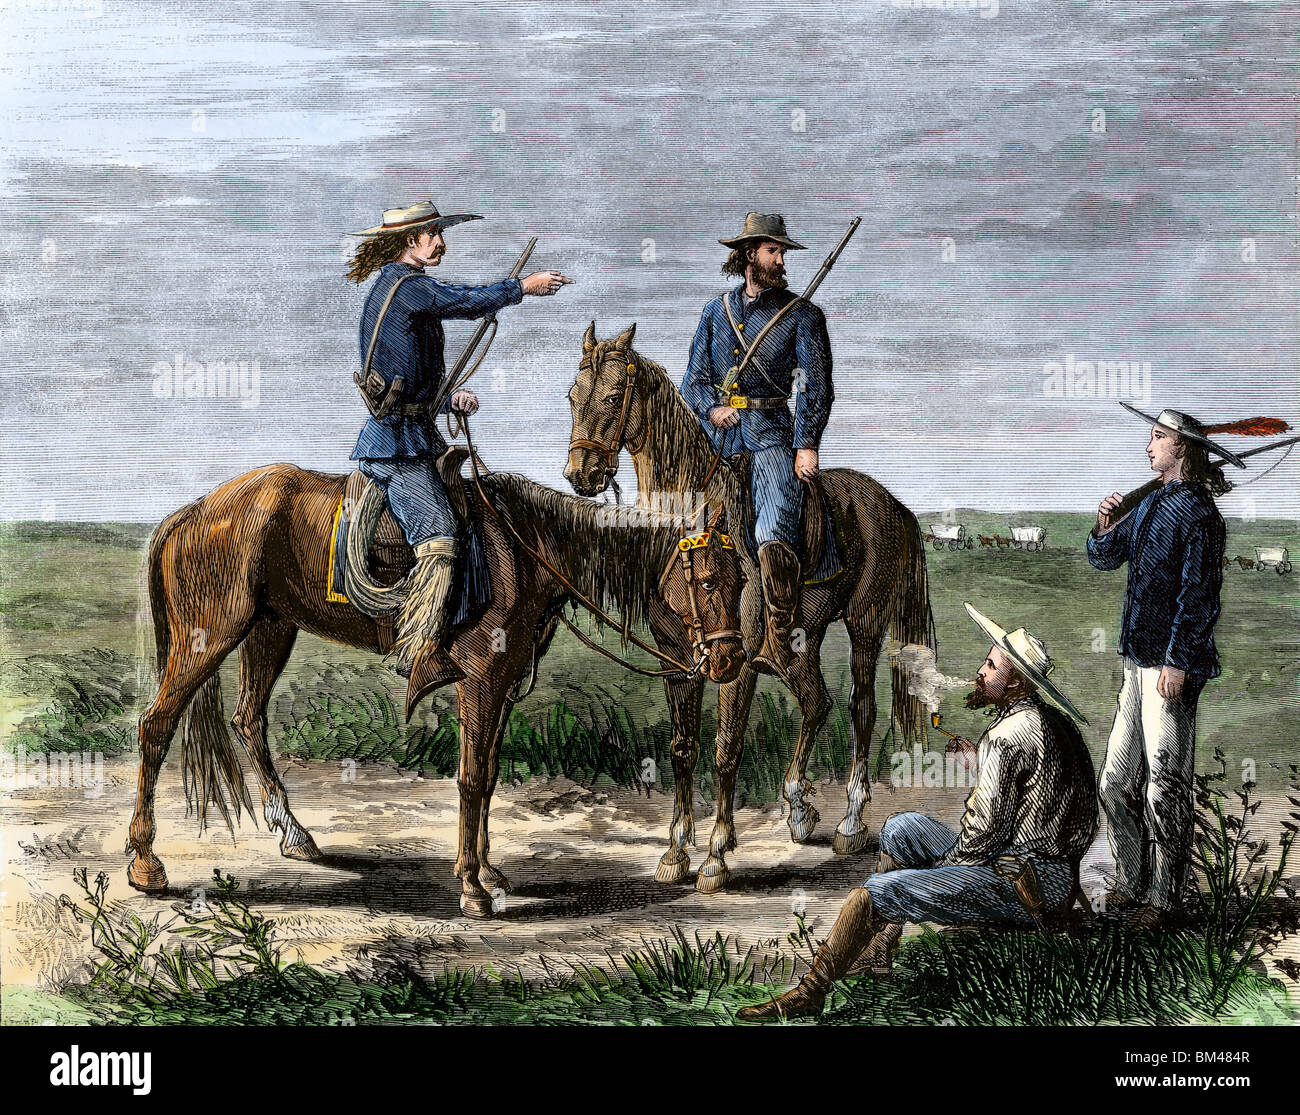 General Custer's scouts during the Native American uprisings on the Great Plains, 1860s. Hand-colored woodcut - Stock Image